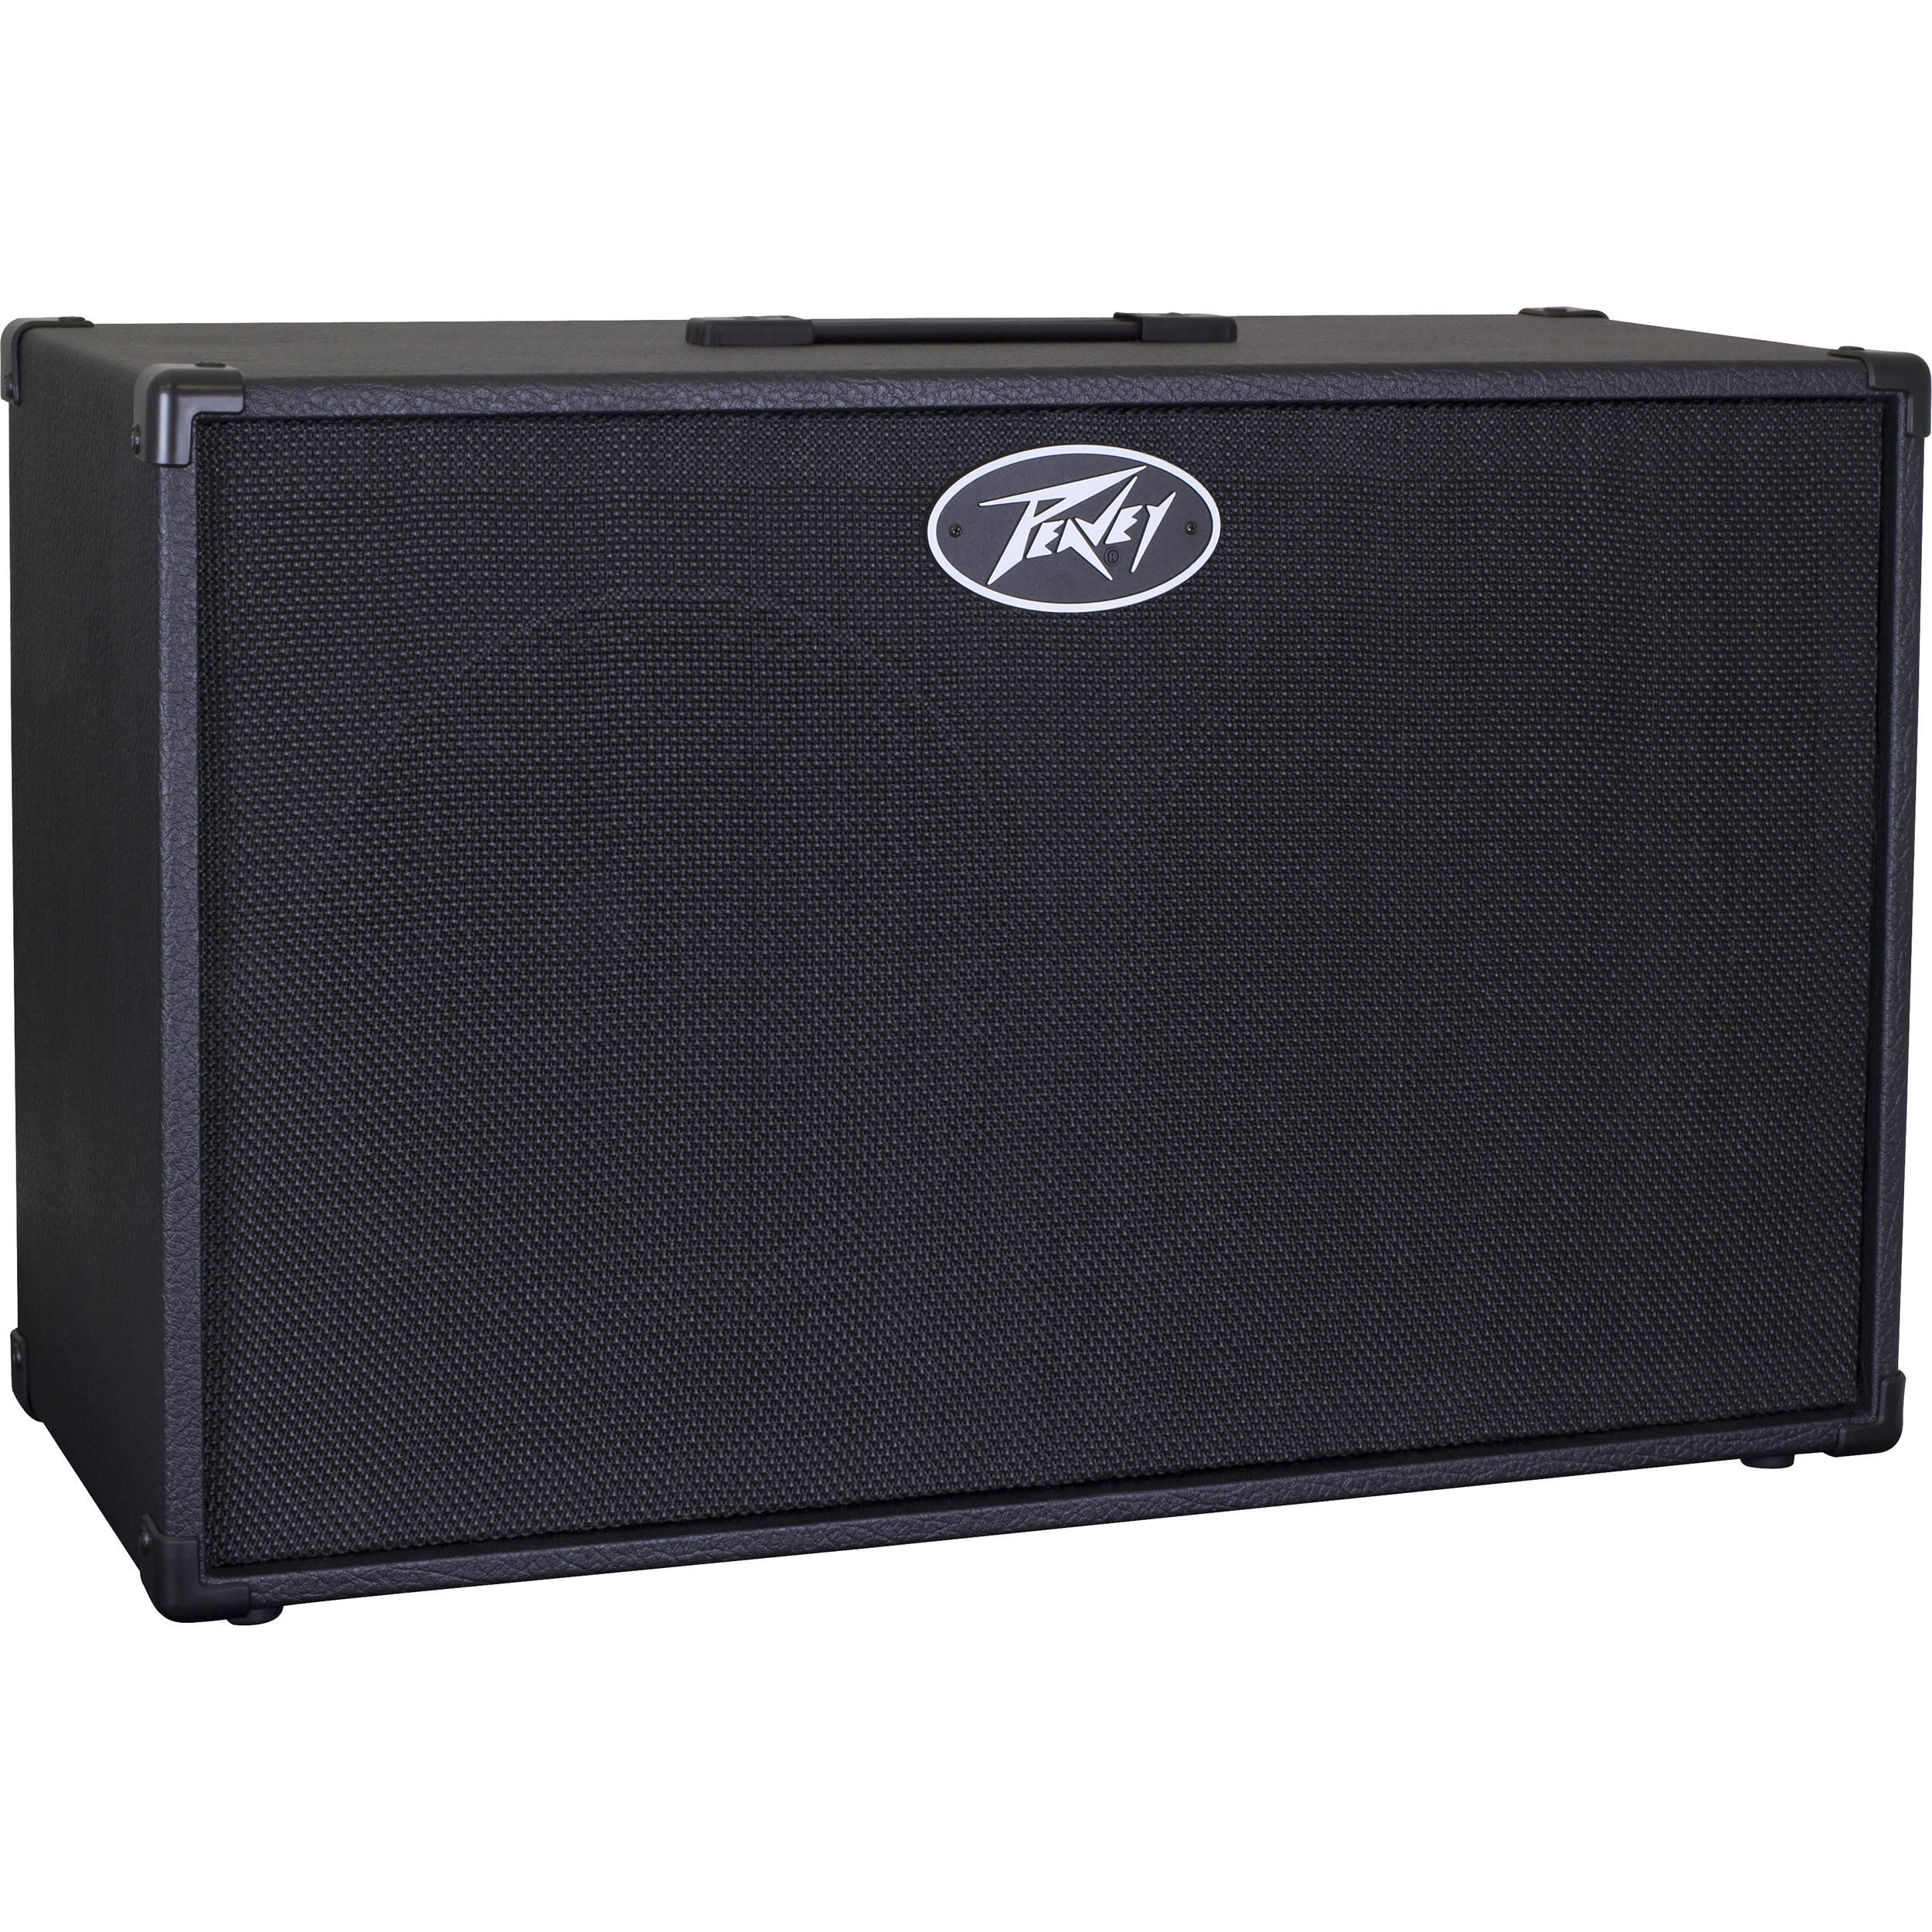 peavey 212 extension cabinet 2x12 guitar cab with 80 watts rms power rating 14367649161 ebay. Black Bedroom Furniture Sets. Home Design Ideas